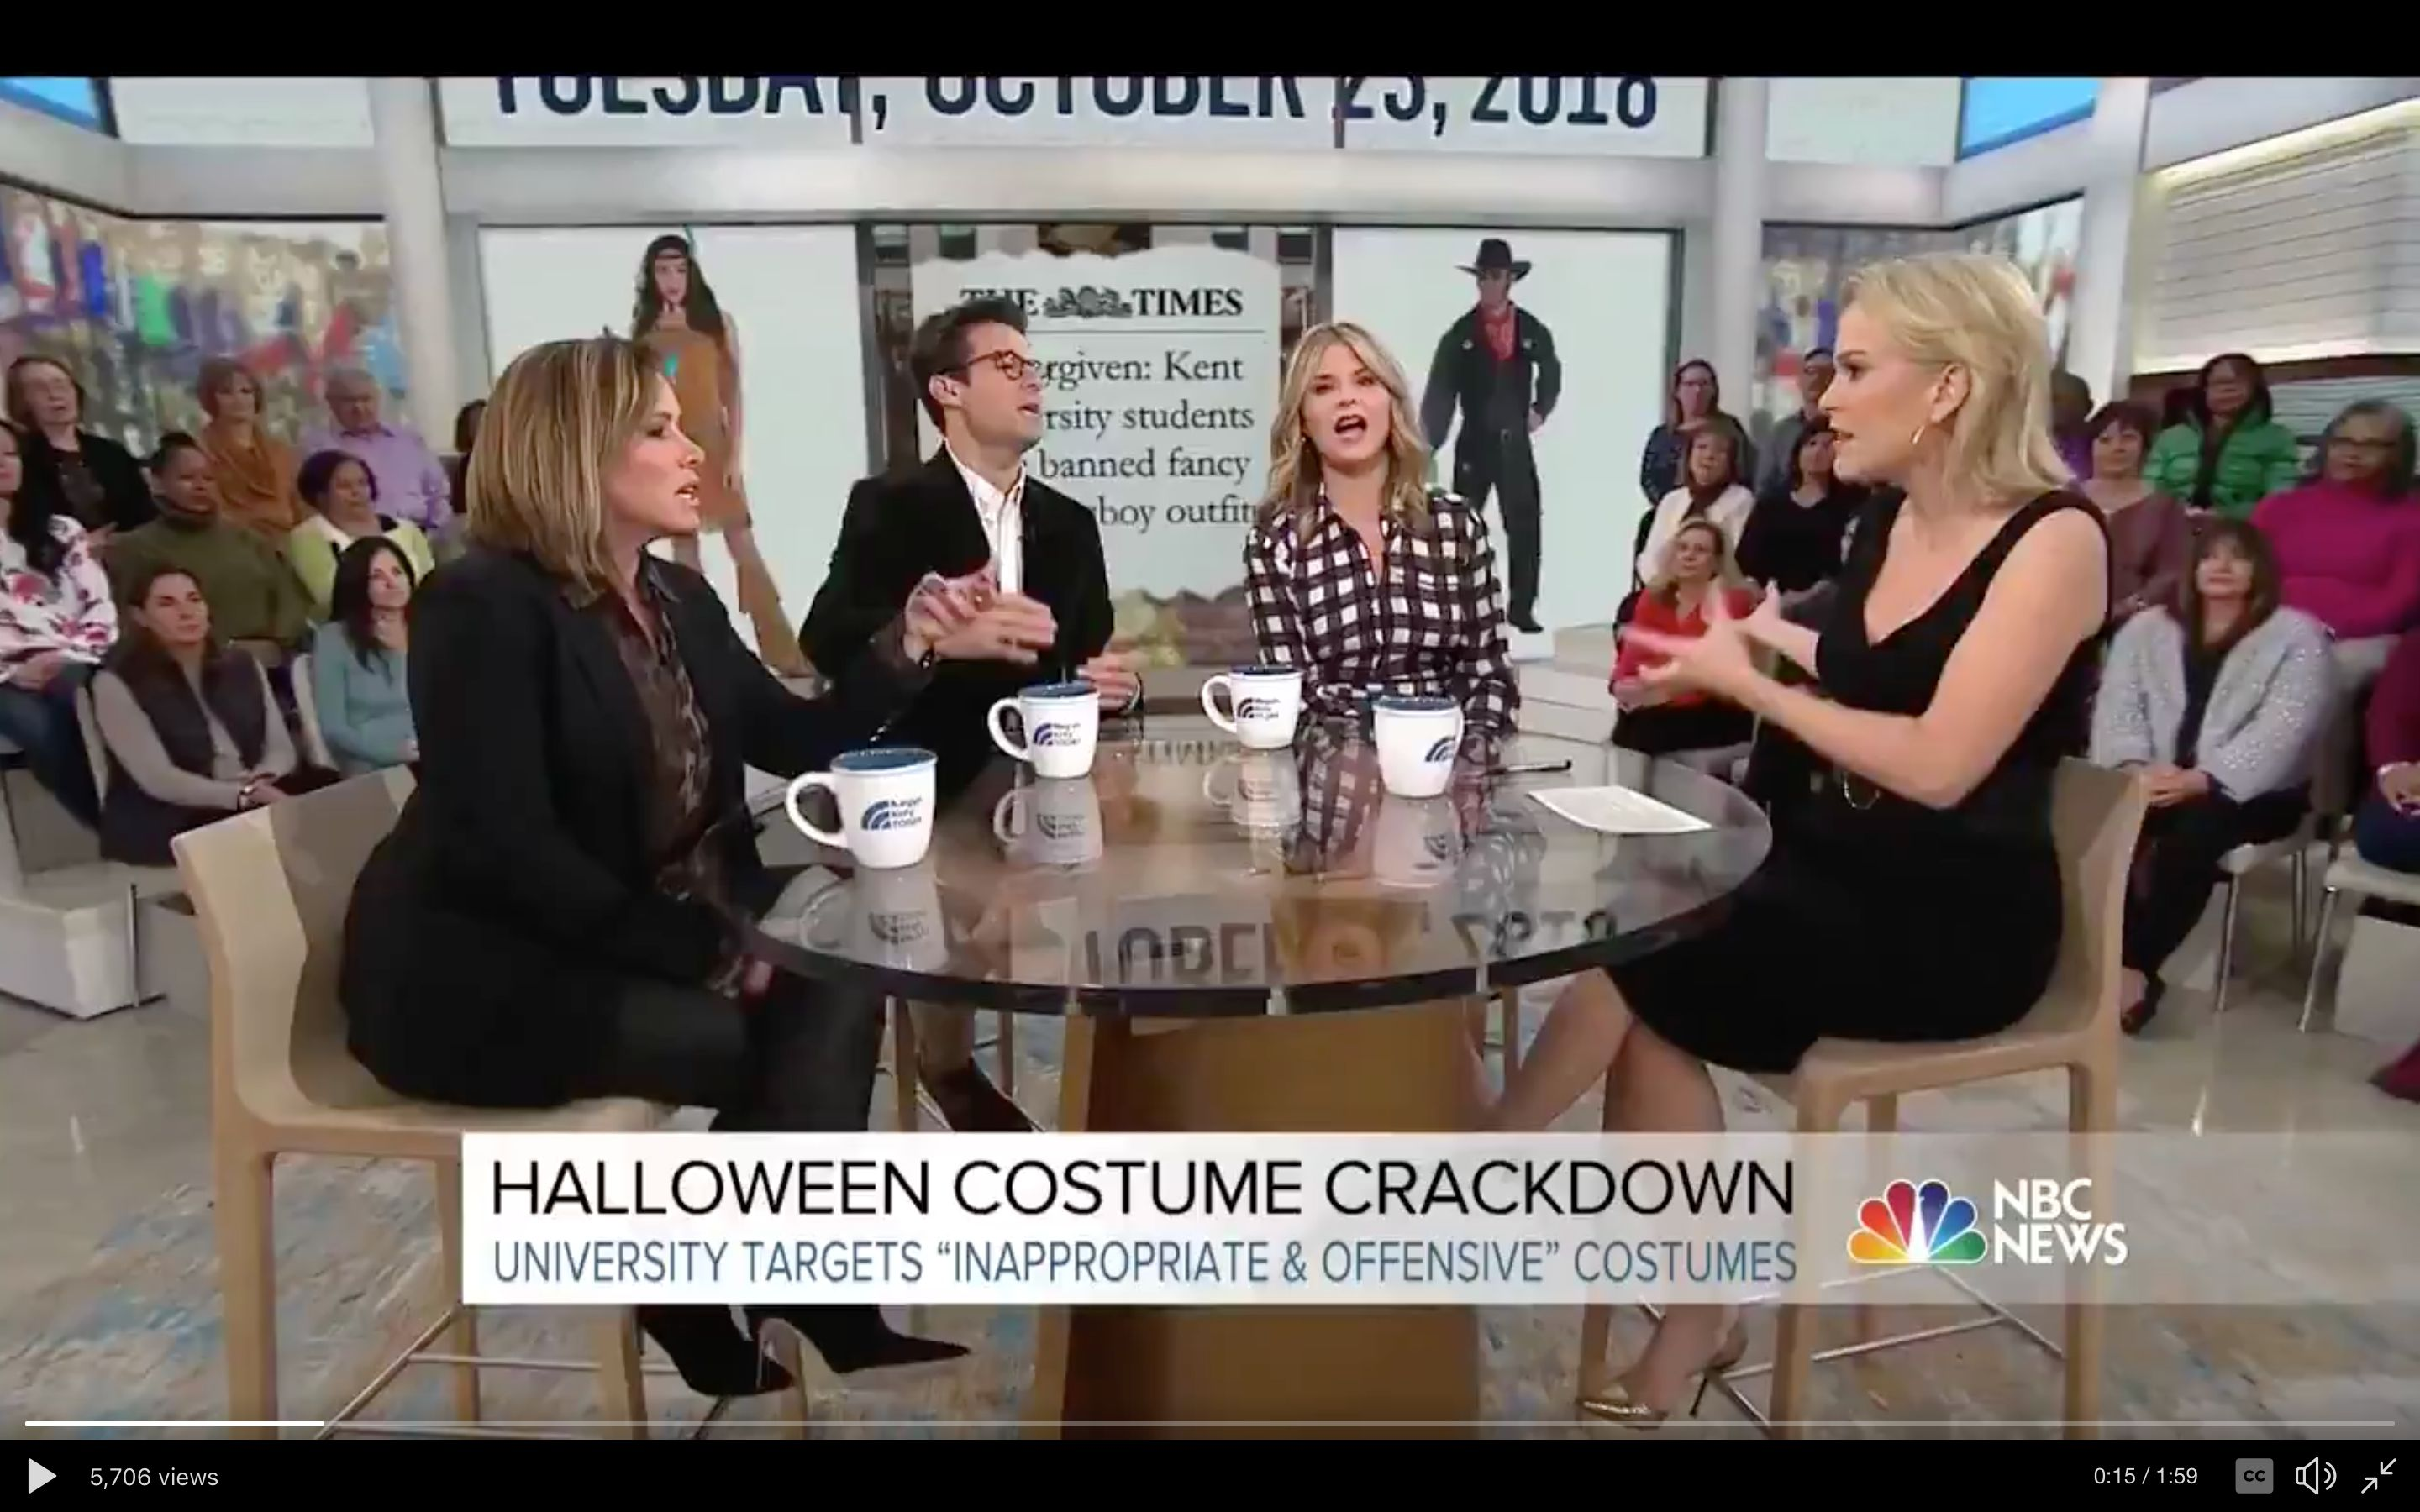 Megyn Kelly doesn't understand why blackface Halloween costumes are offensive